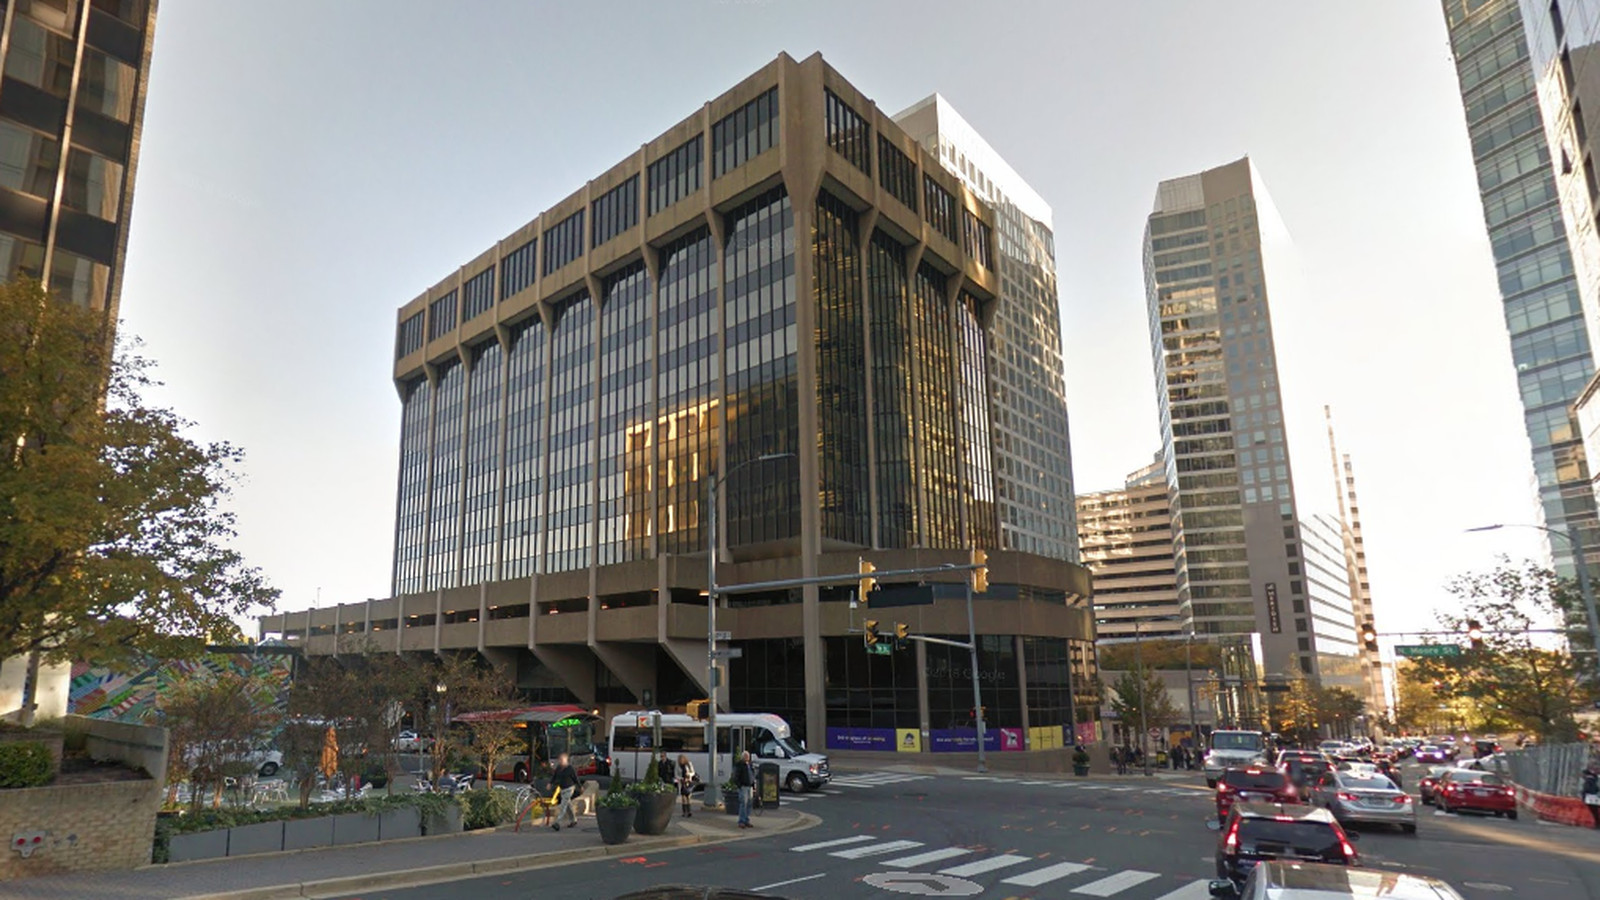 Rosslyn S Rca Building To Be Razed Replaced With 407 Unit